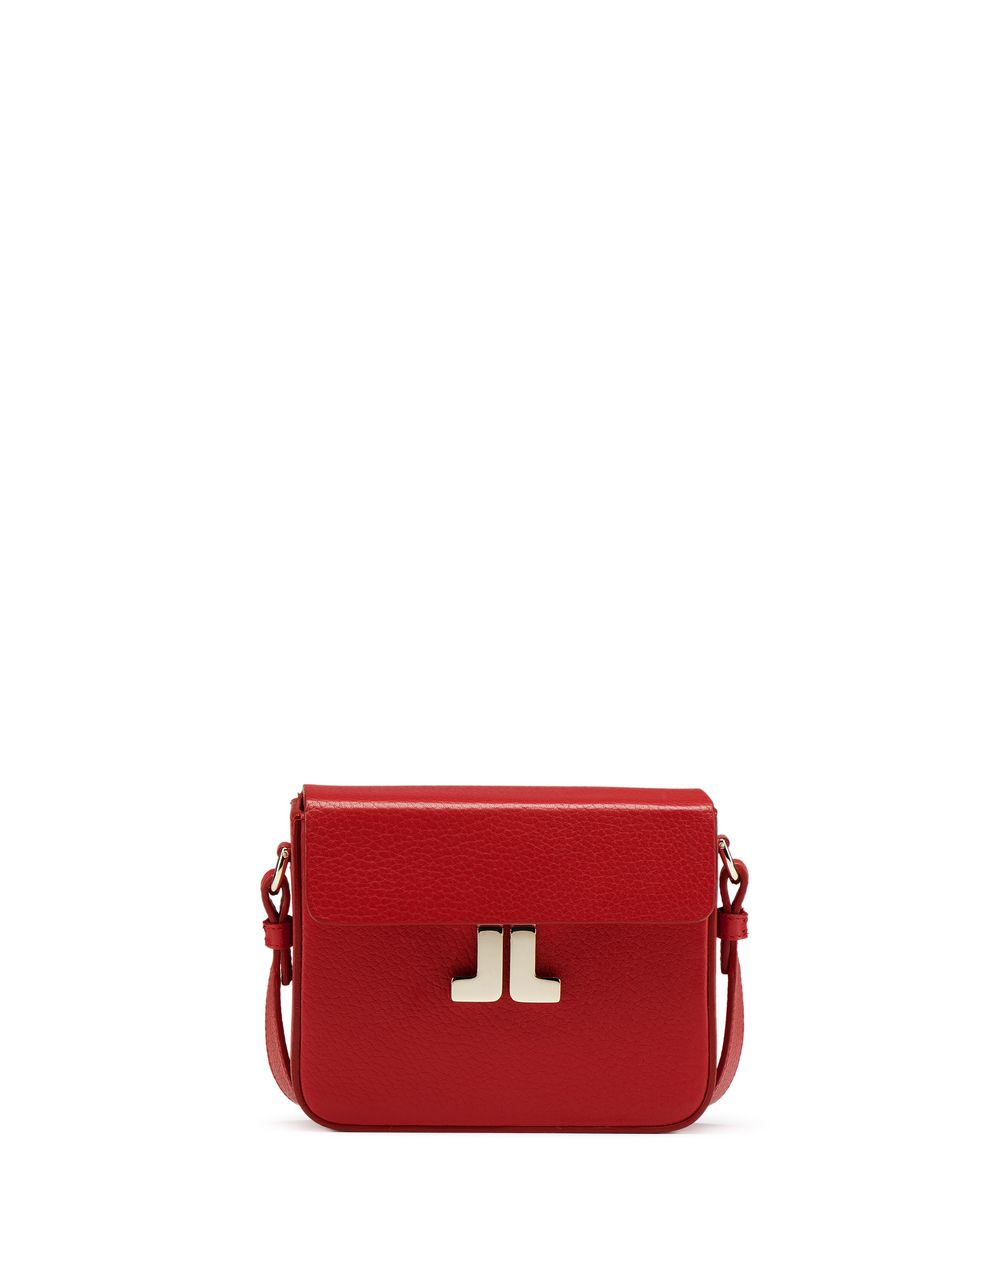 "MINI POPPY ""JL"" BAG - Lanvin"